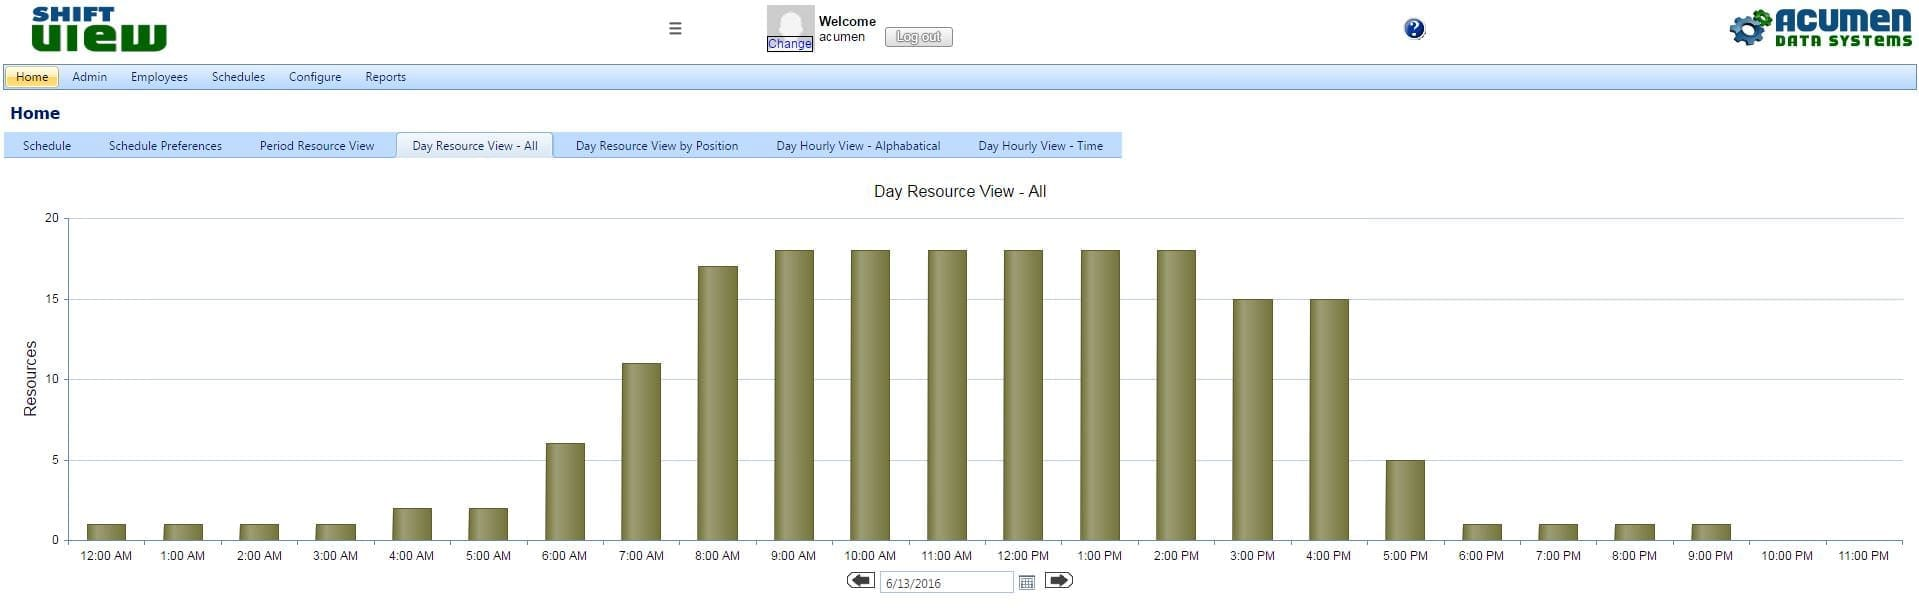 Daily Resource View